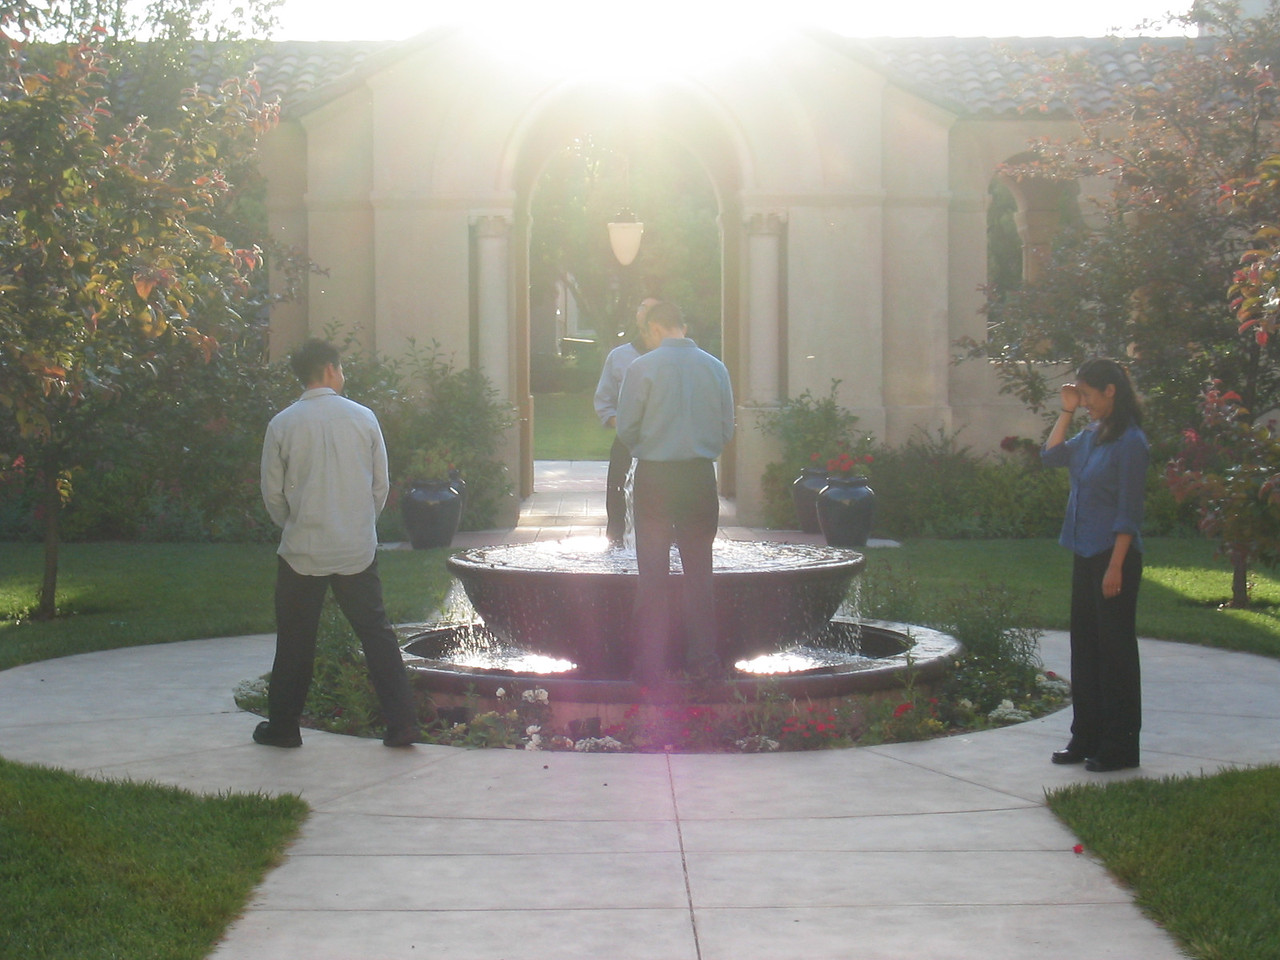 Jonathon and Ben pee in Stanfurd fountain while Chris fertilizes shrub and Joyce looks on